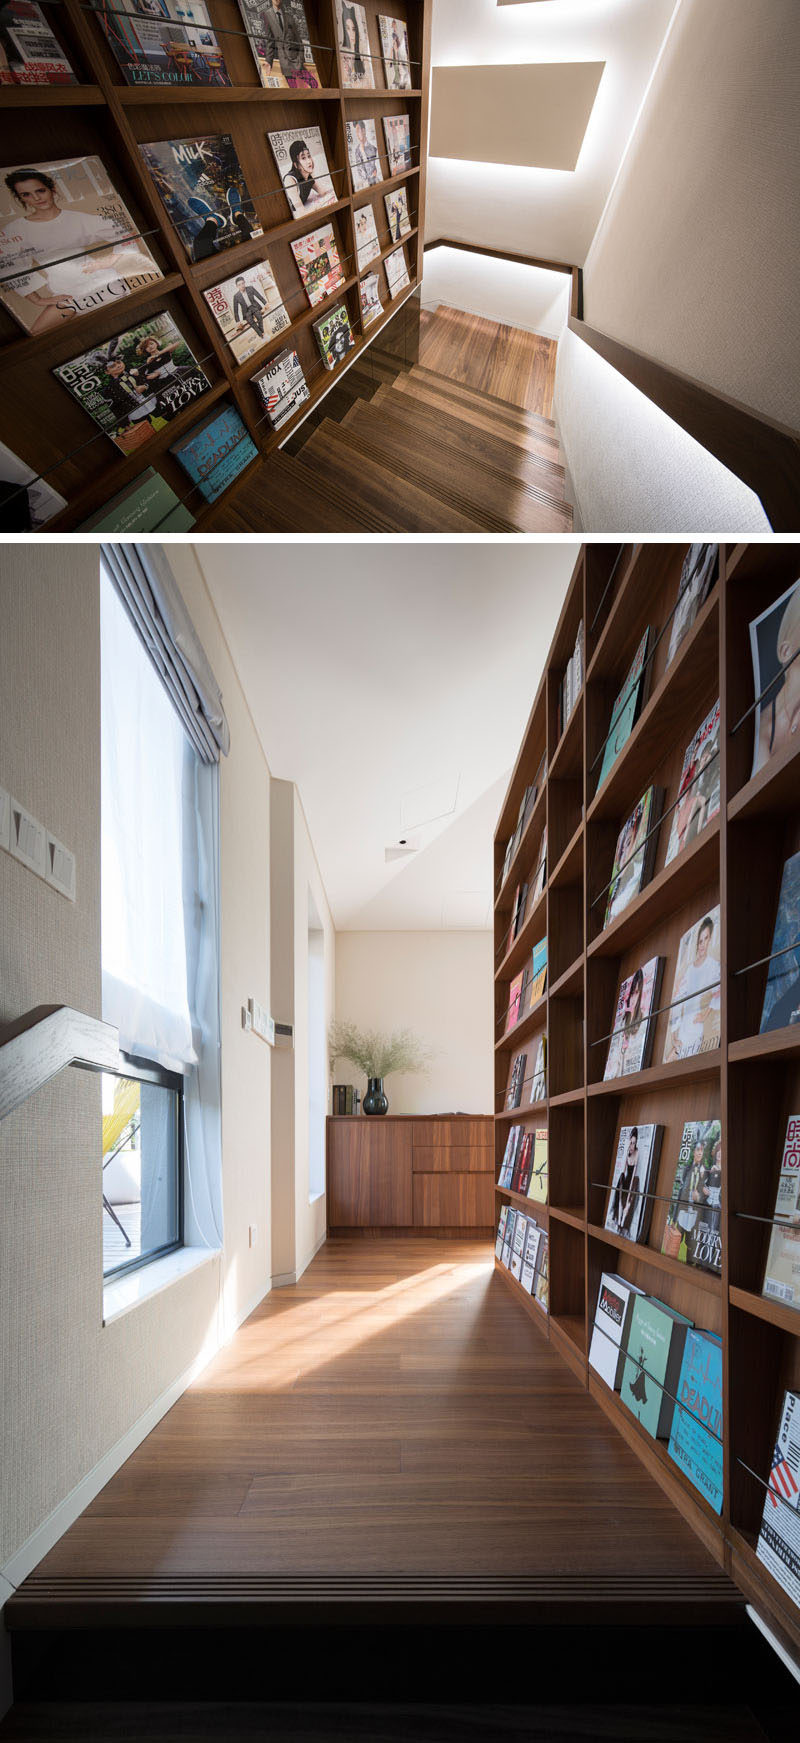 These stairs have a handrail with hidden lighting and a shallow bookcase for displaying magazines. #WoodStairs #ModernStairs #Shelving